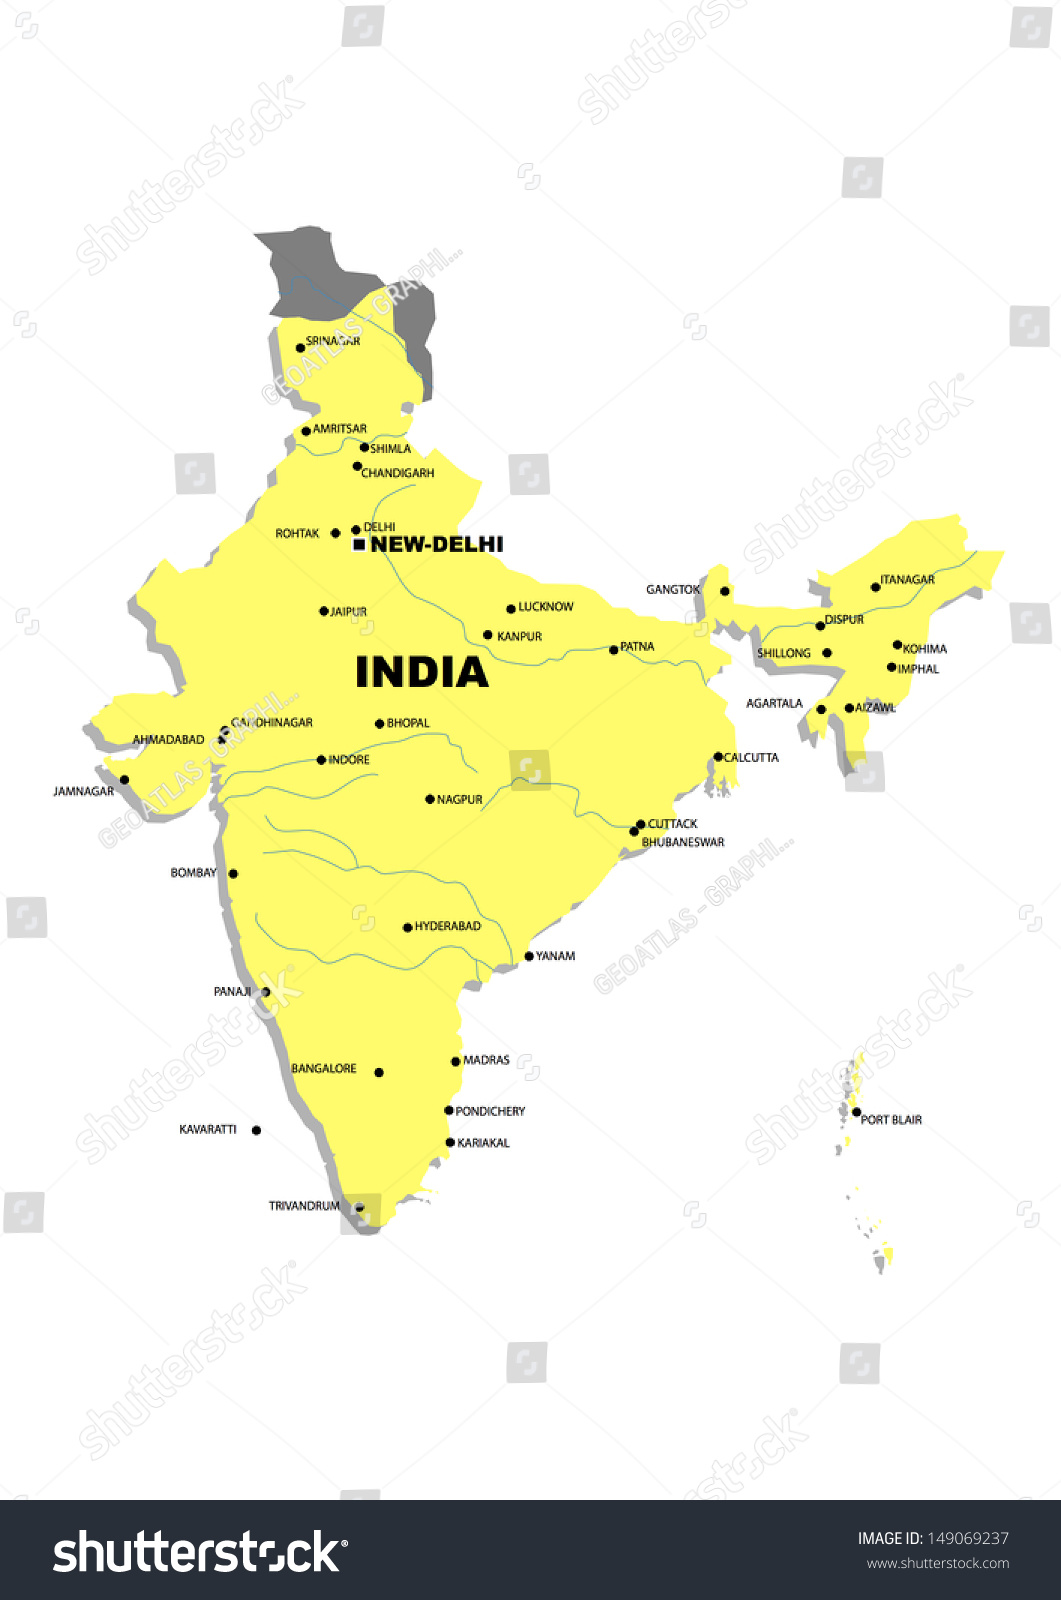 Simple Map Of India | Danielrossi on simple myanmar map, simple maine map, simple mali map, simple africa map, simple spain map, simple south asia map, simple denmark map, simple okinawa map, simple guam map, simple colombia map, simple market map, simple carribbean map, simple inuit map, simple austria map, simple connecticut map, simple world map, simple dubai map, simple bolivia map, simple mediterranean map, simple russian federation map,